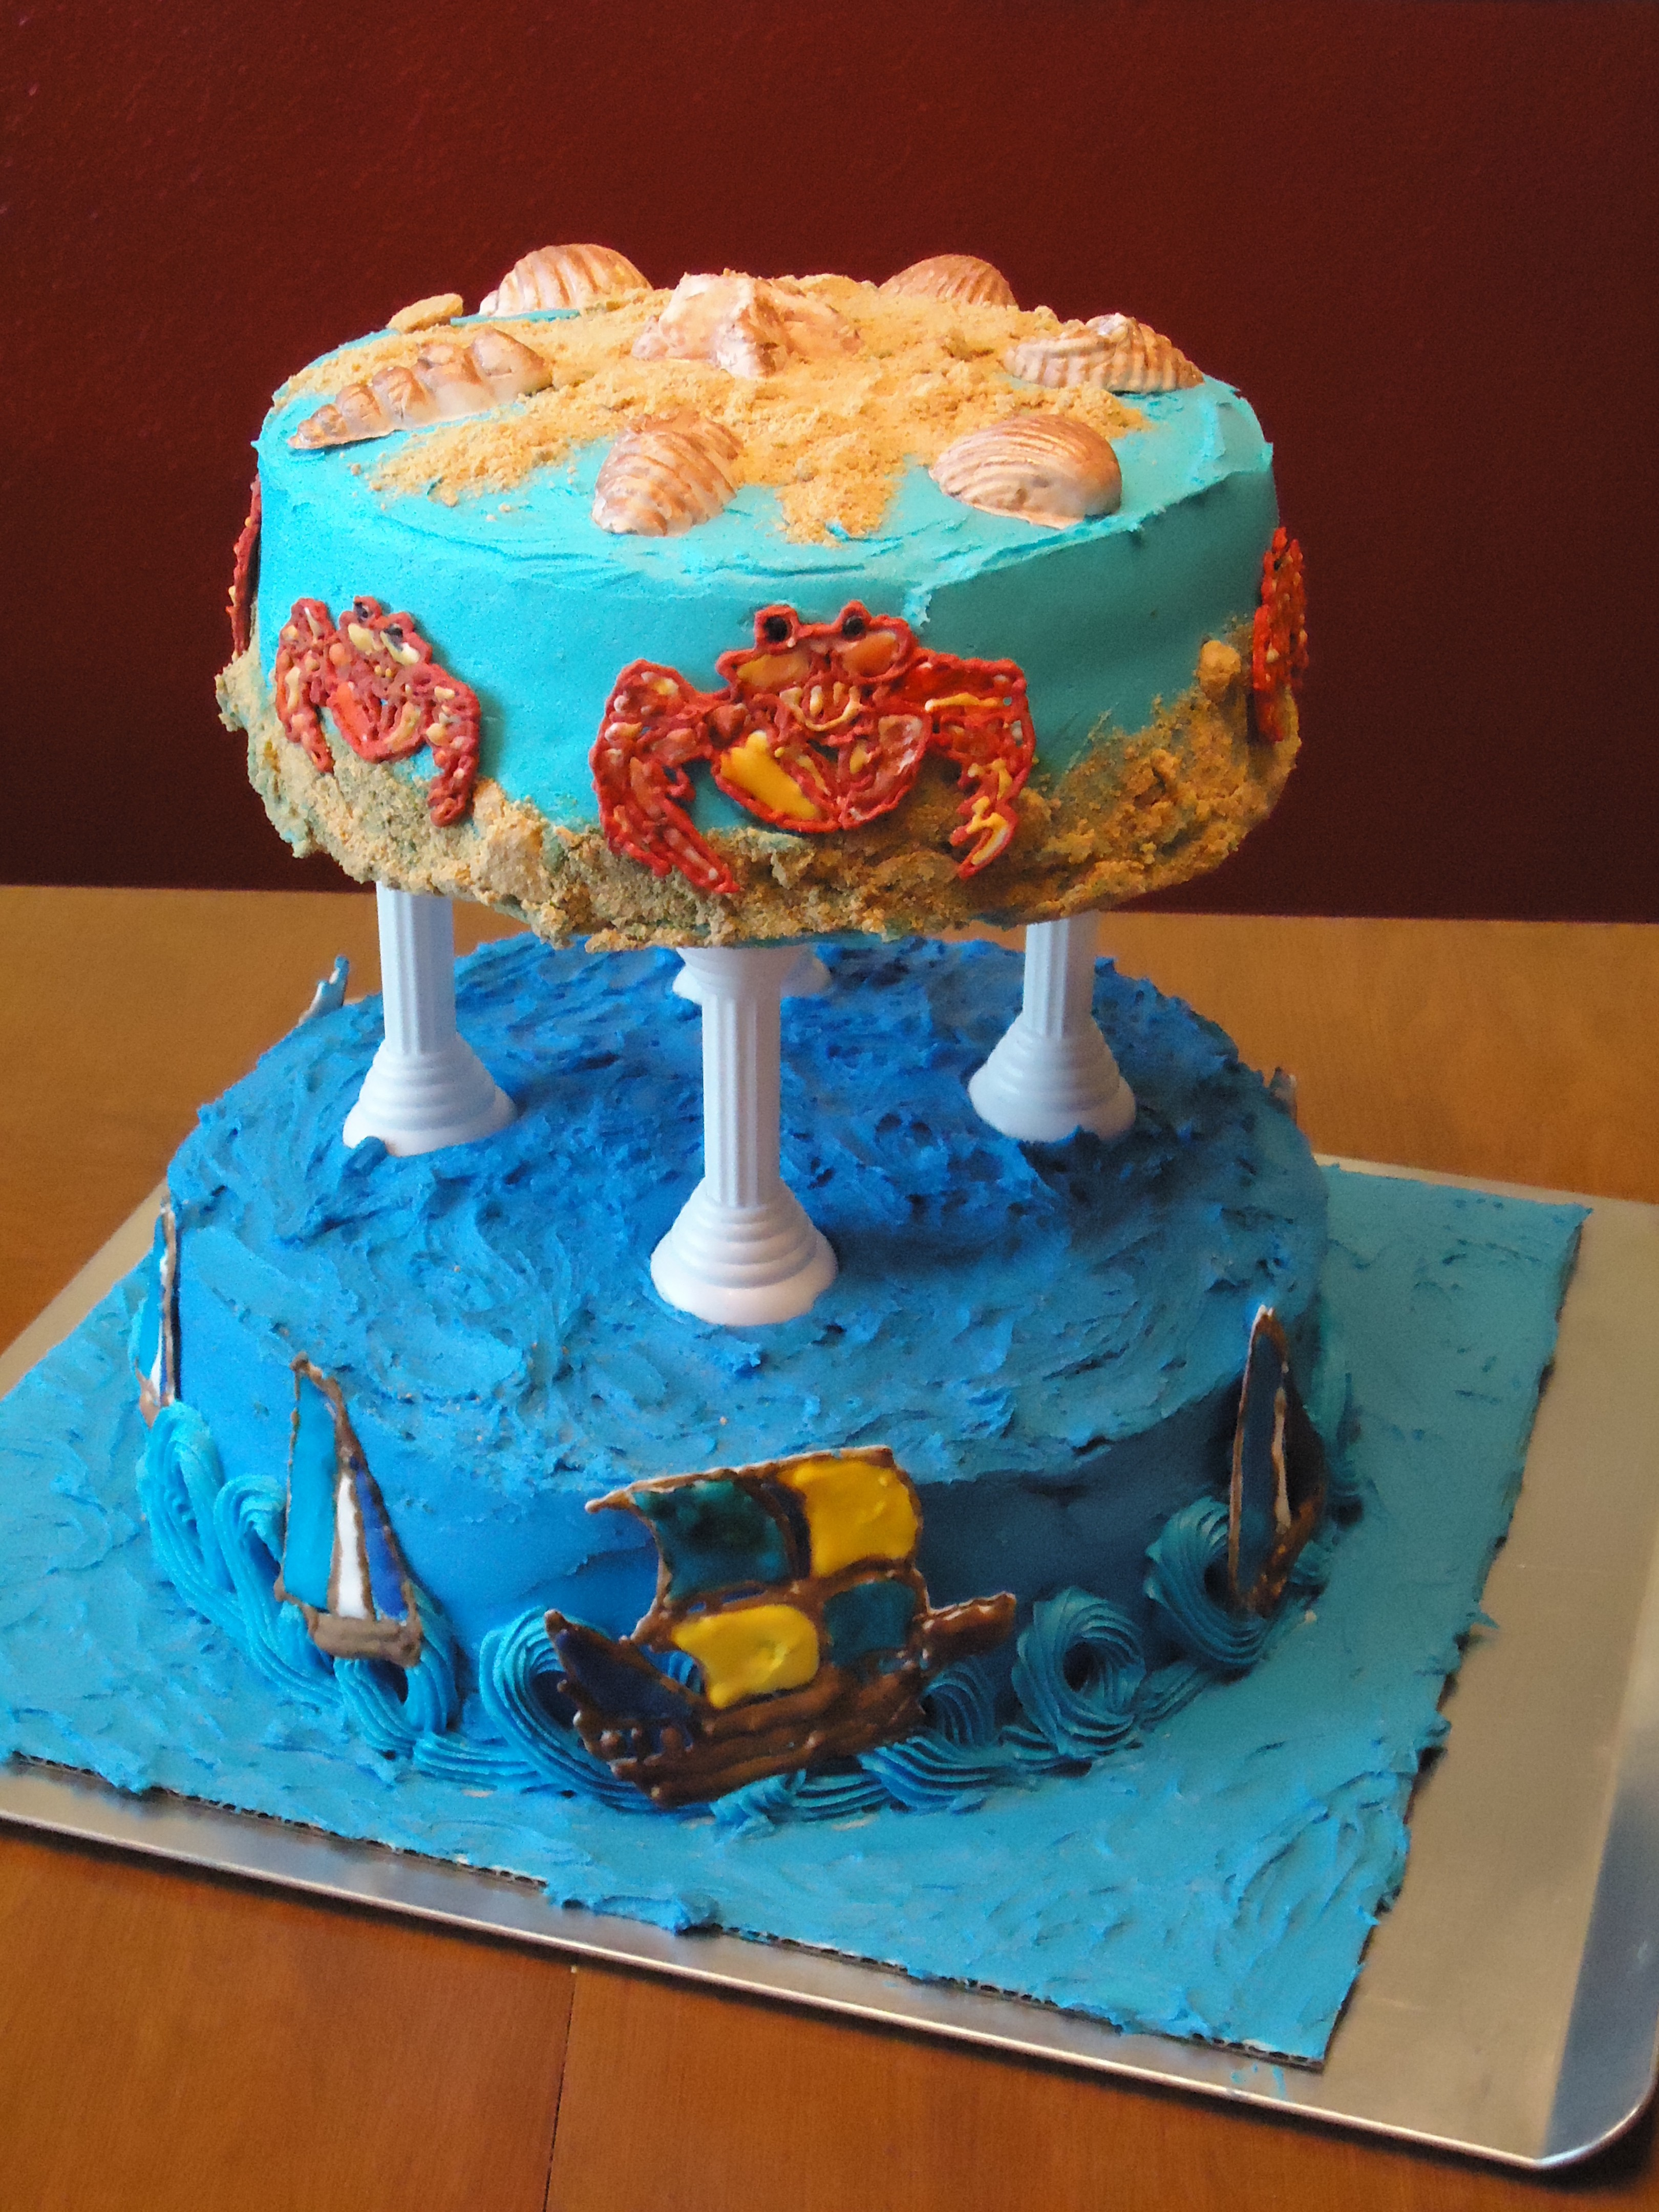 Two tier cake with sailing ships and crabs made from color flow and sea shells made from gum paste. The sailing ships and sea shells were hand painted, the sea shells using pearl dust mixed with water